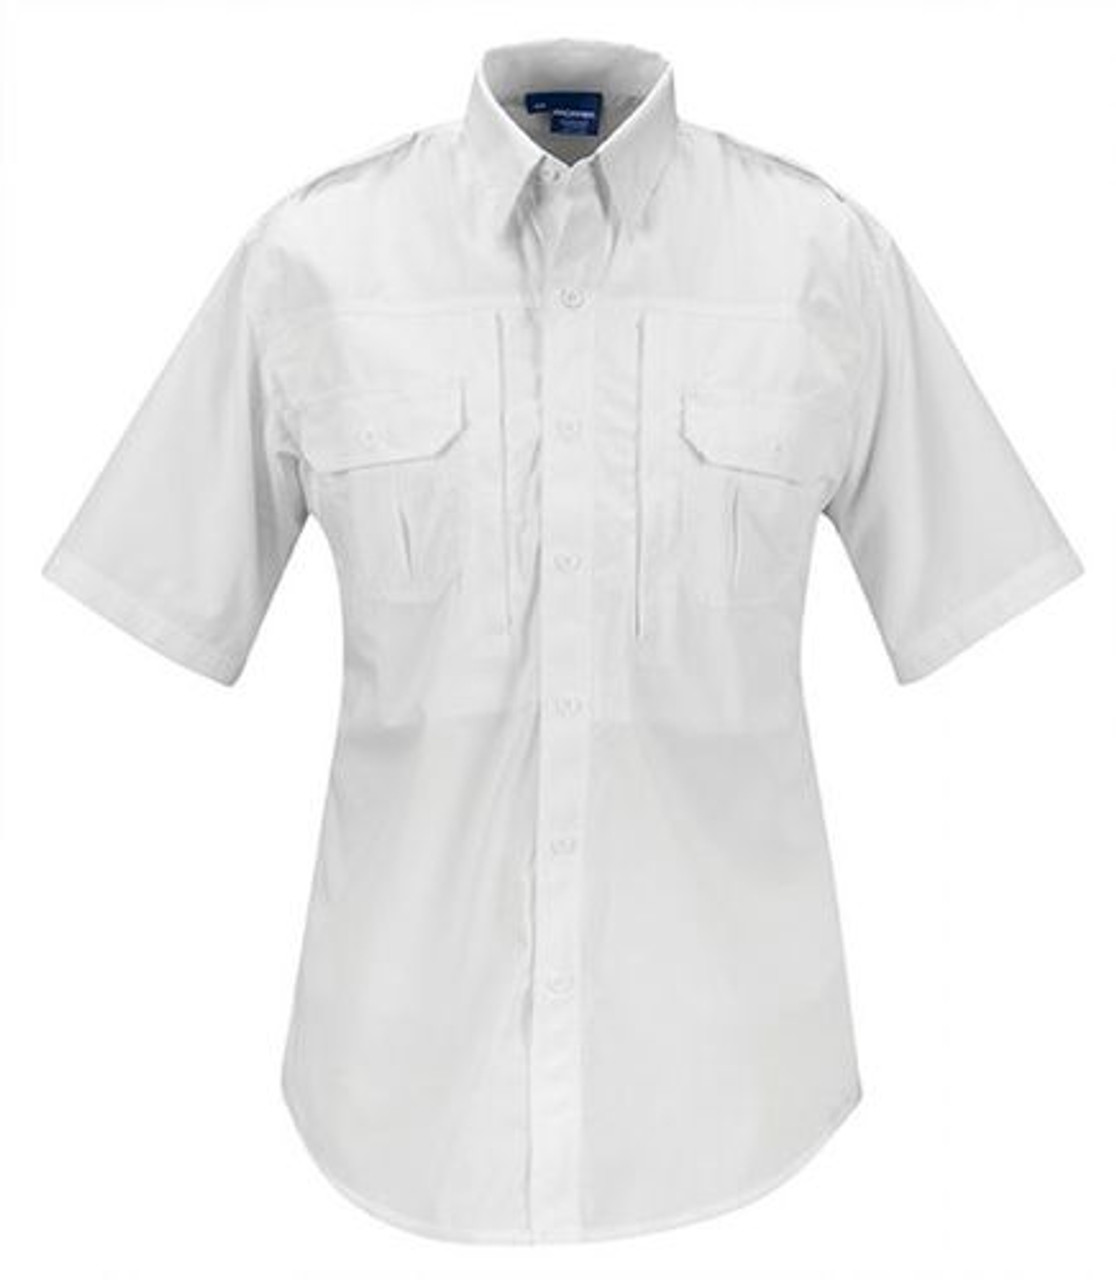 5.11 TACTICAL 46122 MENS STATION CLASS A SHORT SLEEVE SHIRT WHITE X-LARGE